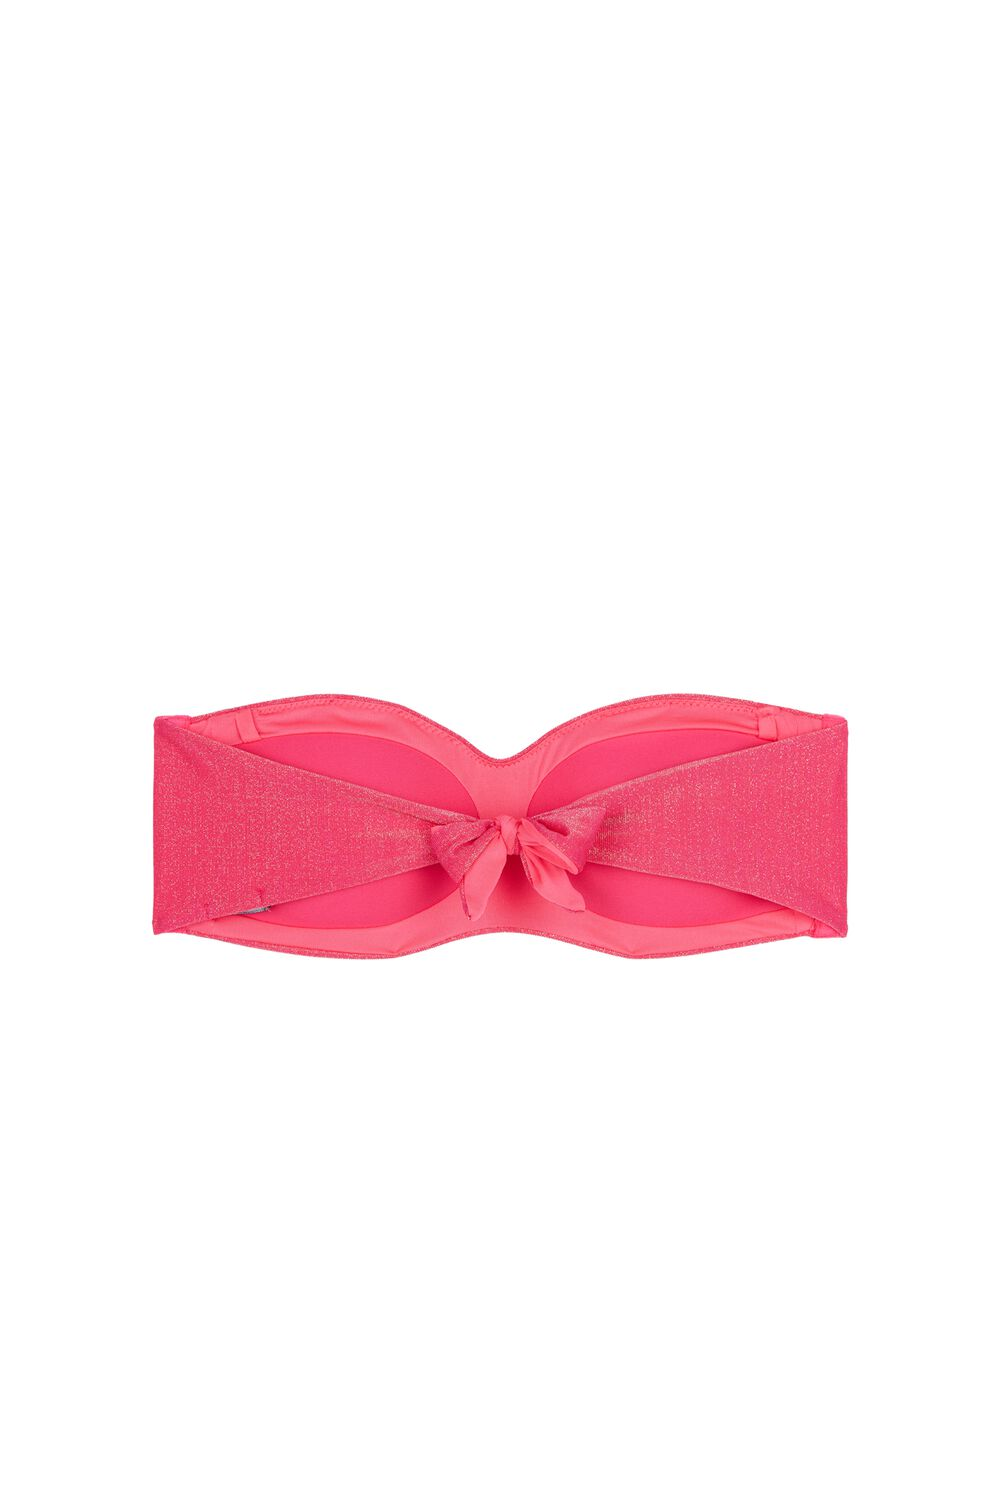 Glowing Summer Fuchsia Bandeau Bikini